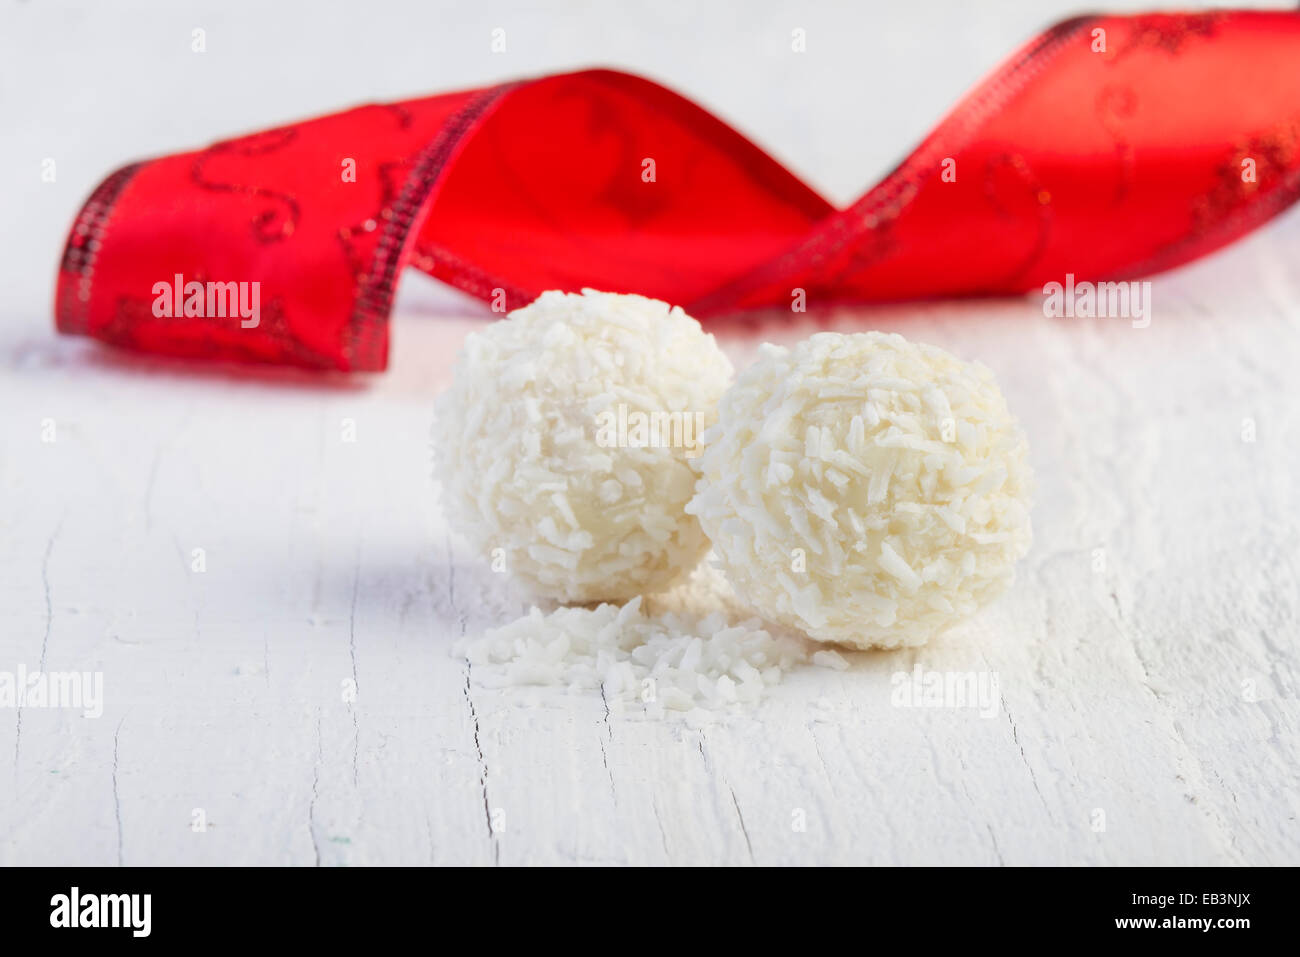 Coconut snowball truffles on white background. Arrangement of coconut cookies on wooden elegant background. - Stock Image